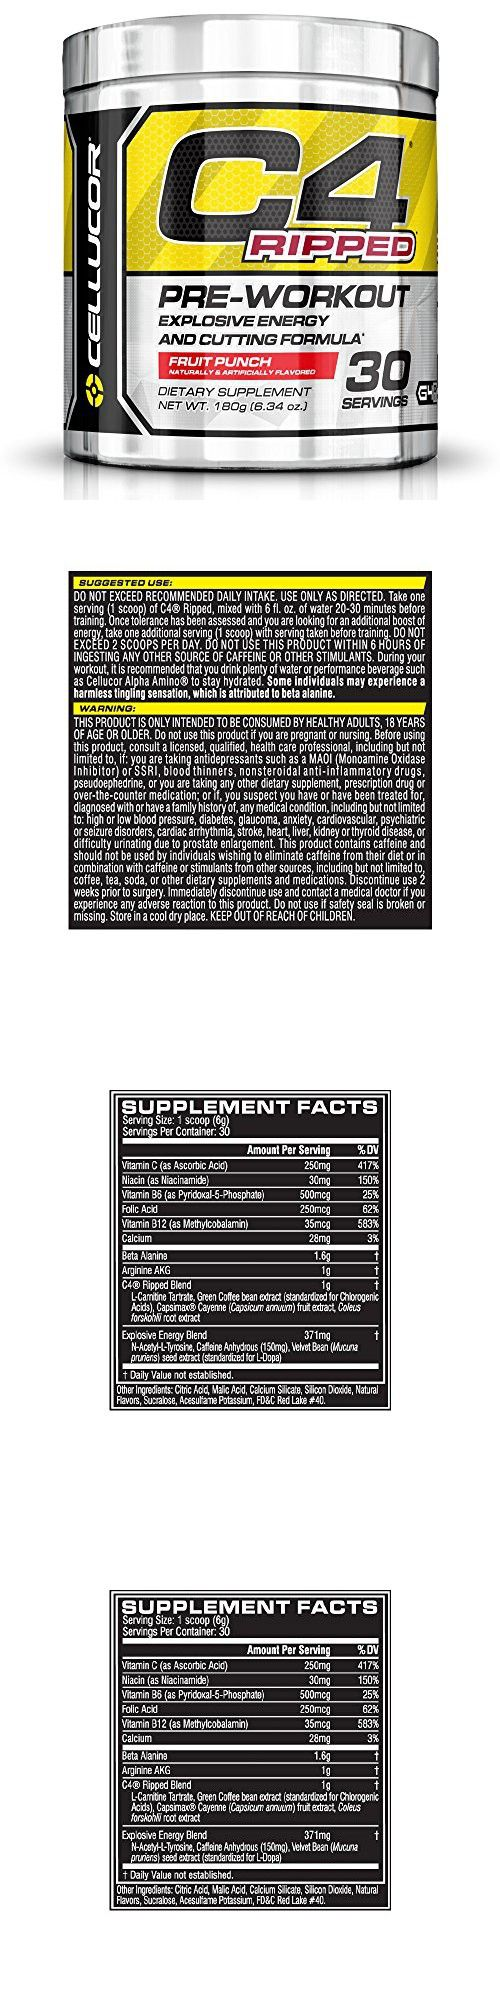 Cellucor C4 Ripped Pre Workout Thermogenic Fat Burner with Energy and Weight Loss, Fruit Punch, 180g (6.34 oz.)- 30 count